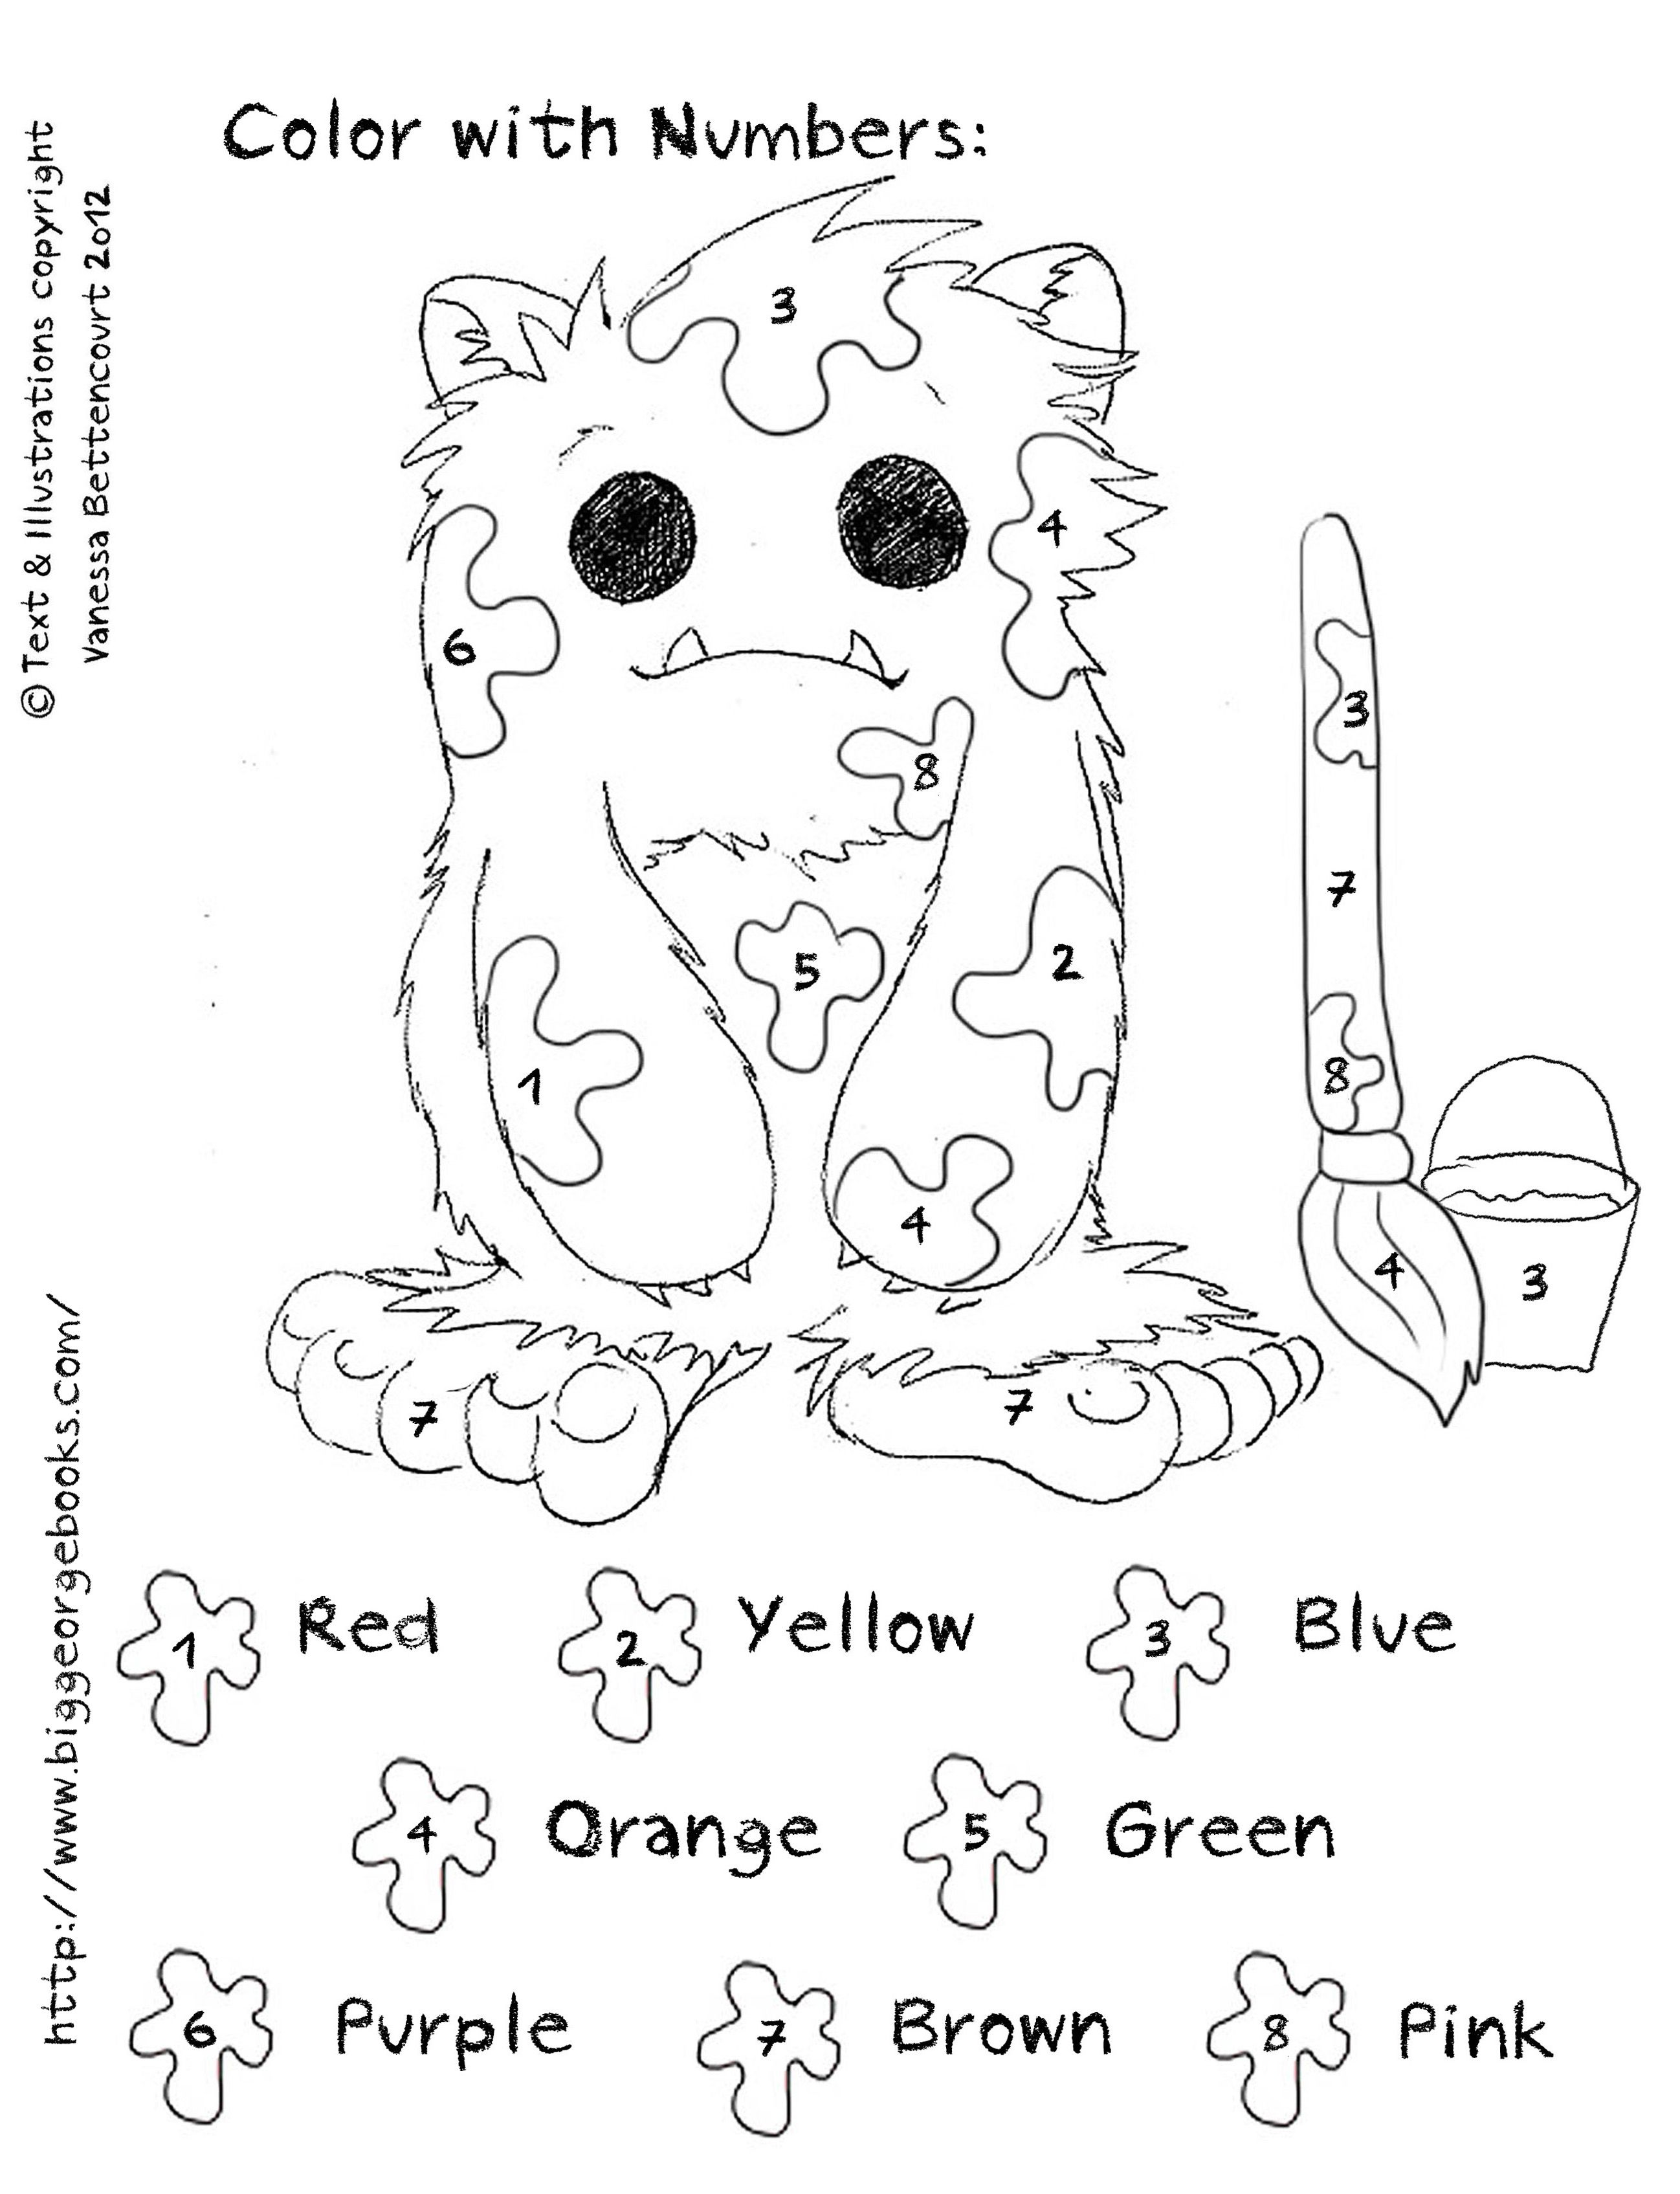 Free download worksheets, Esl, crafts, activities at: http://www ...